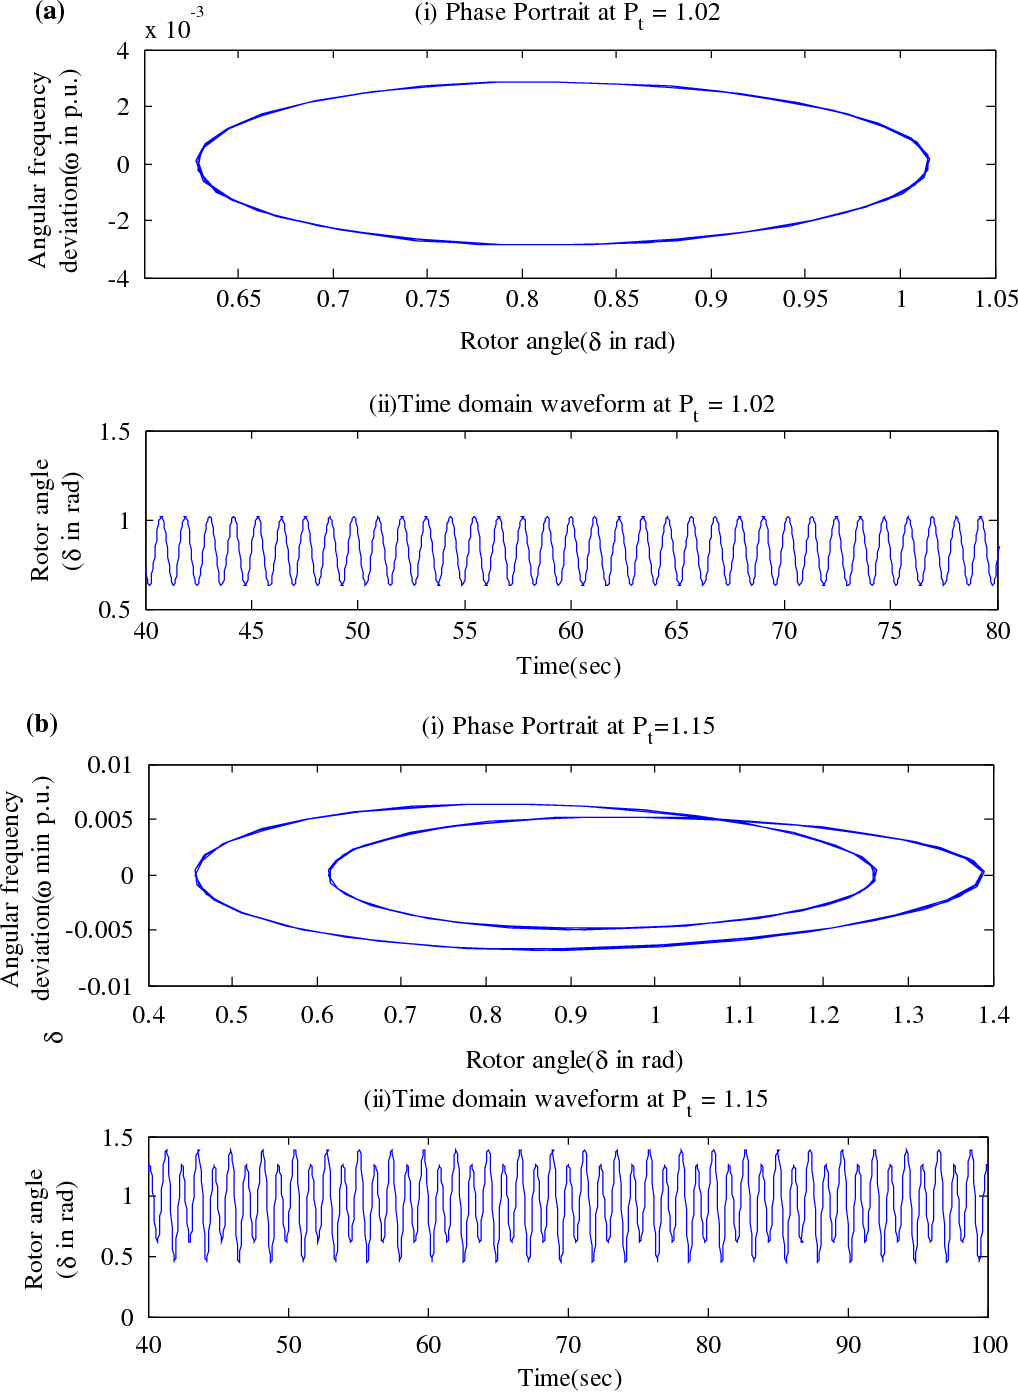 Figure 4. Period doubling bifurcation study by varying parameter Pt.